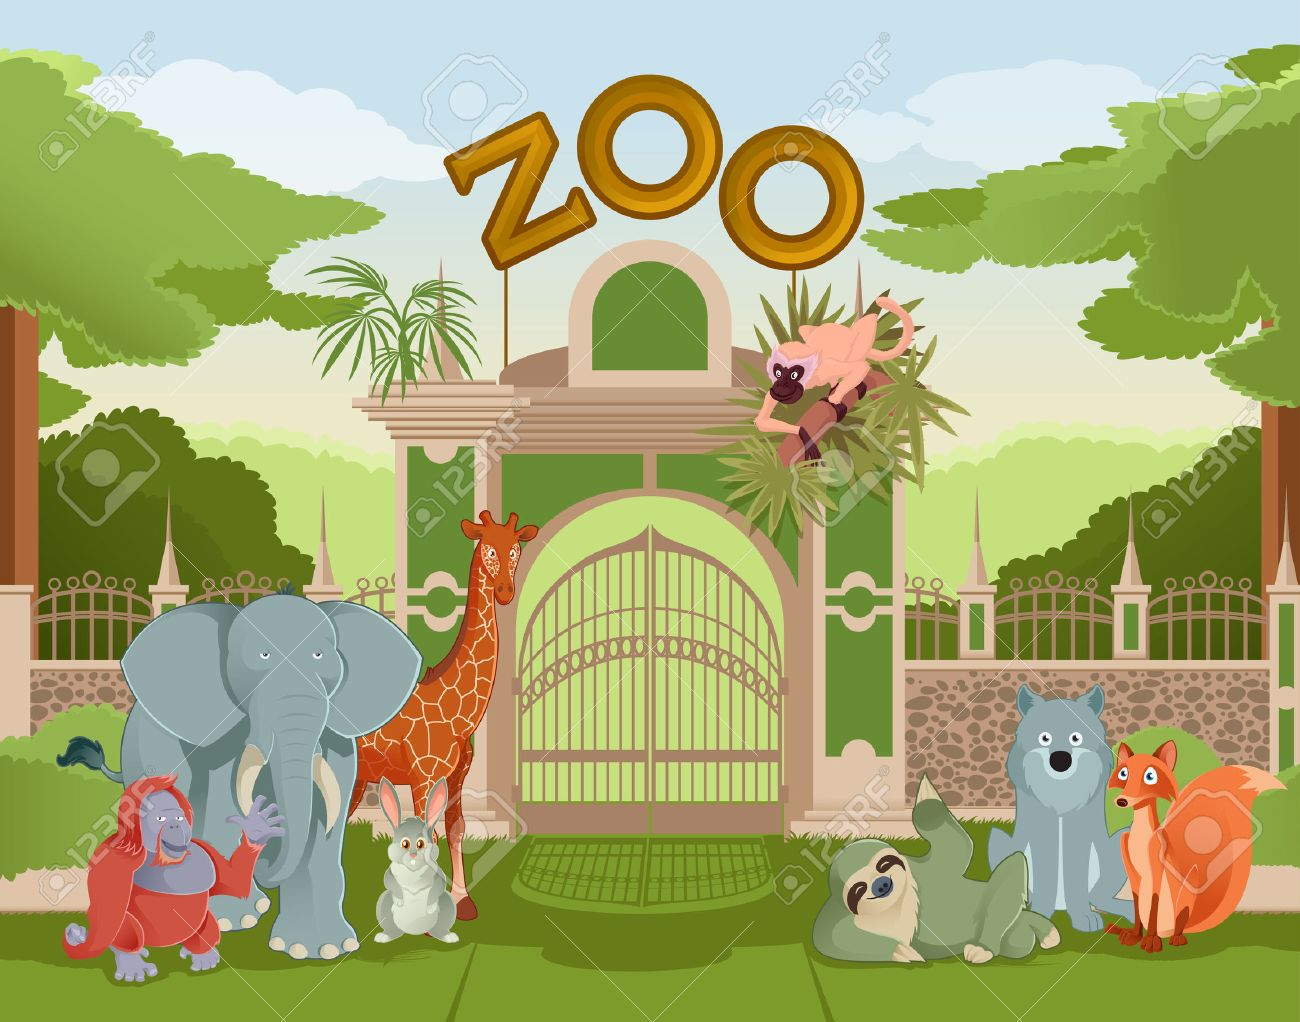 an analysis of the zoo story The zoo story summary & study guide includes detailed chapter summaries and analysis, quotes, character descriptions, themes, and more.